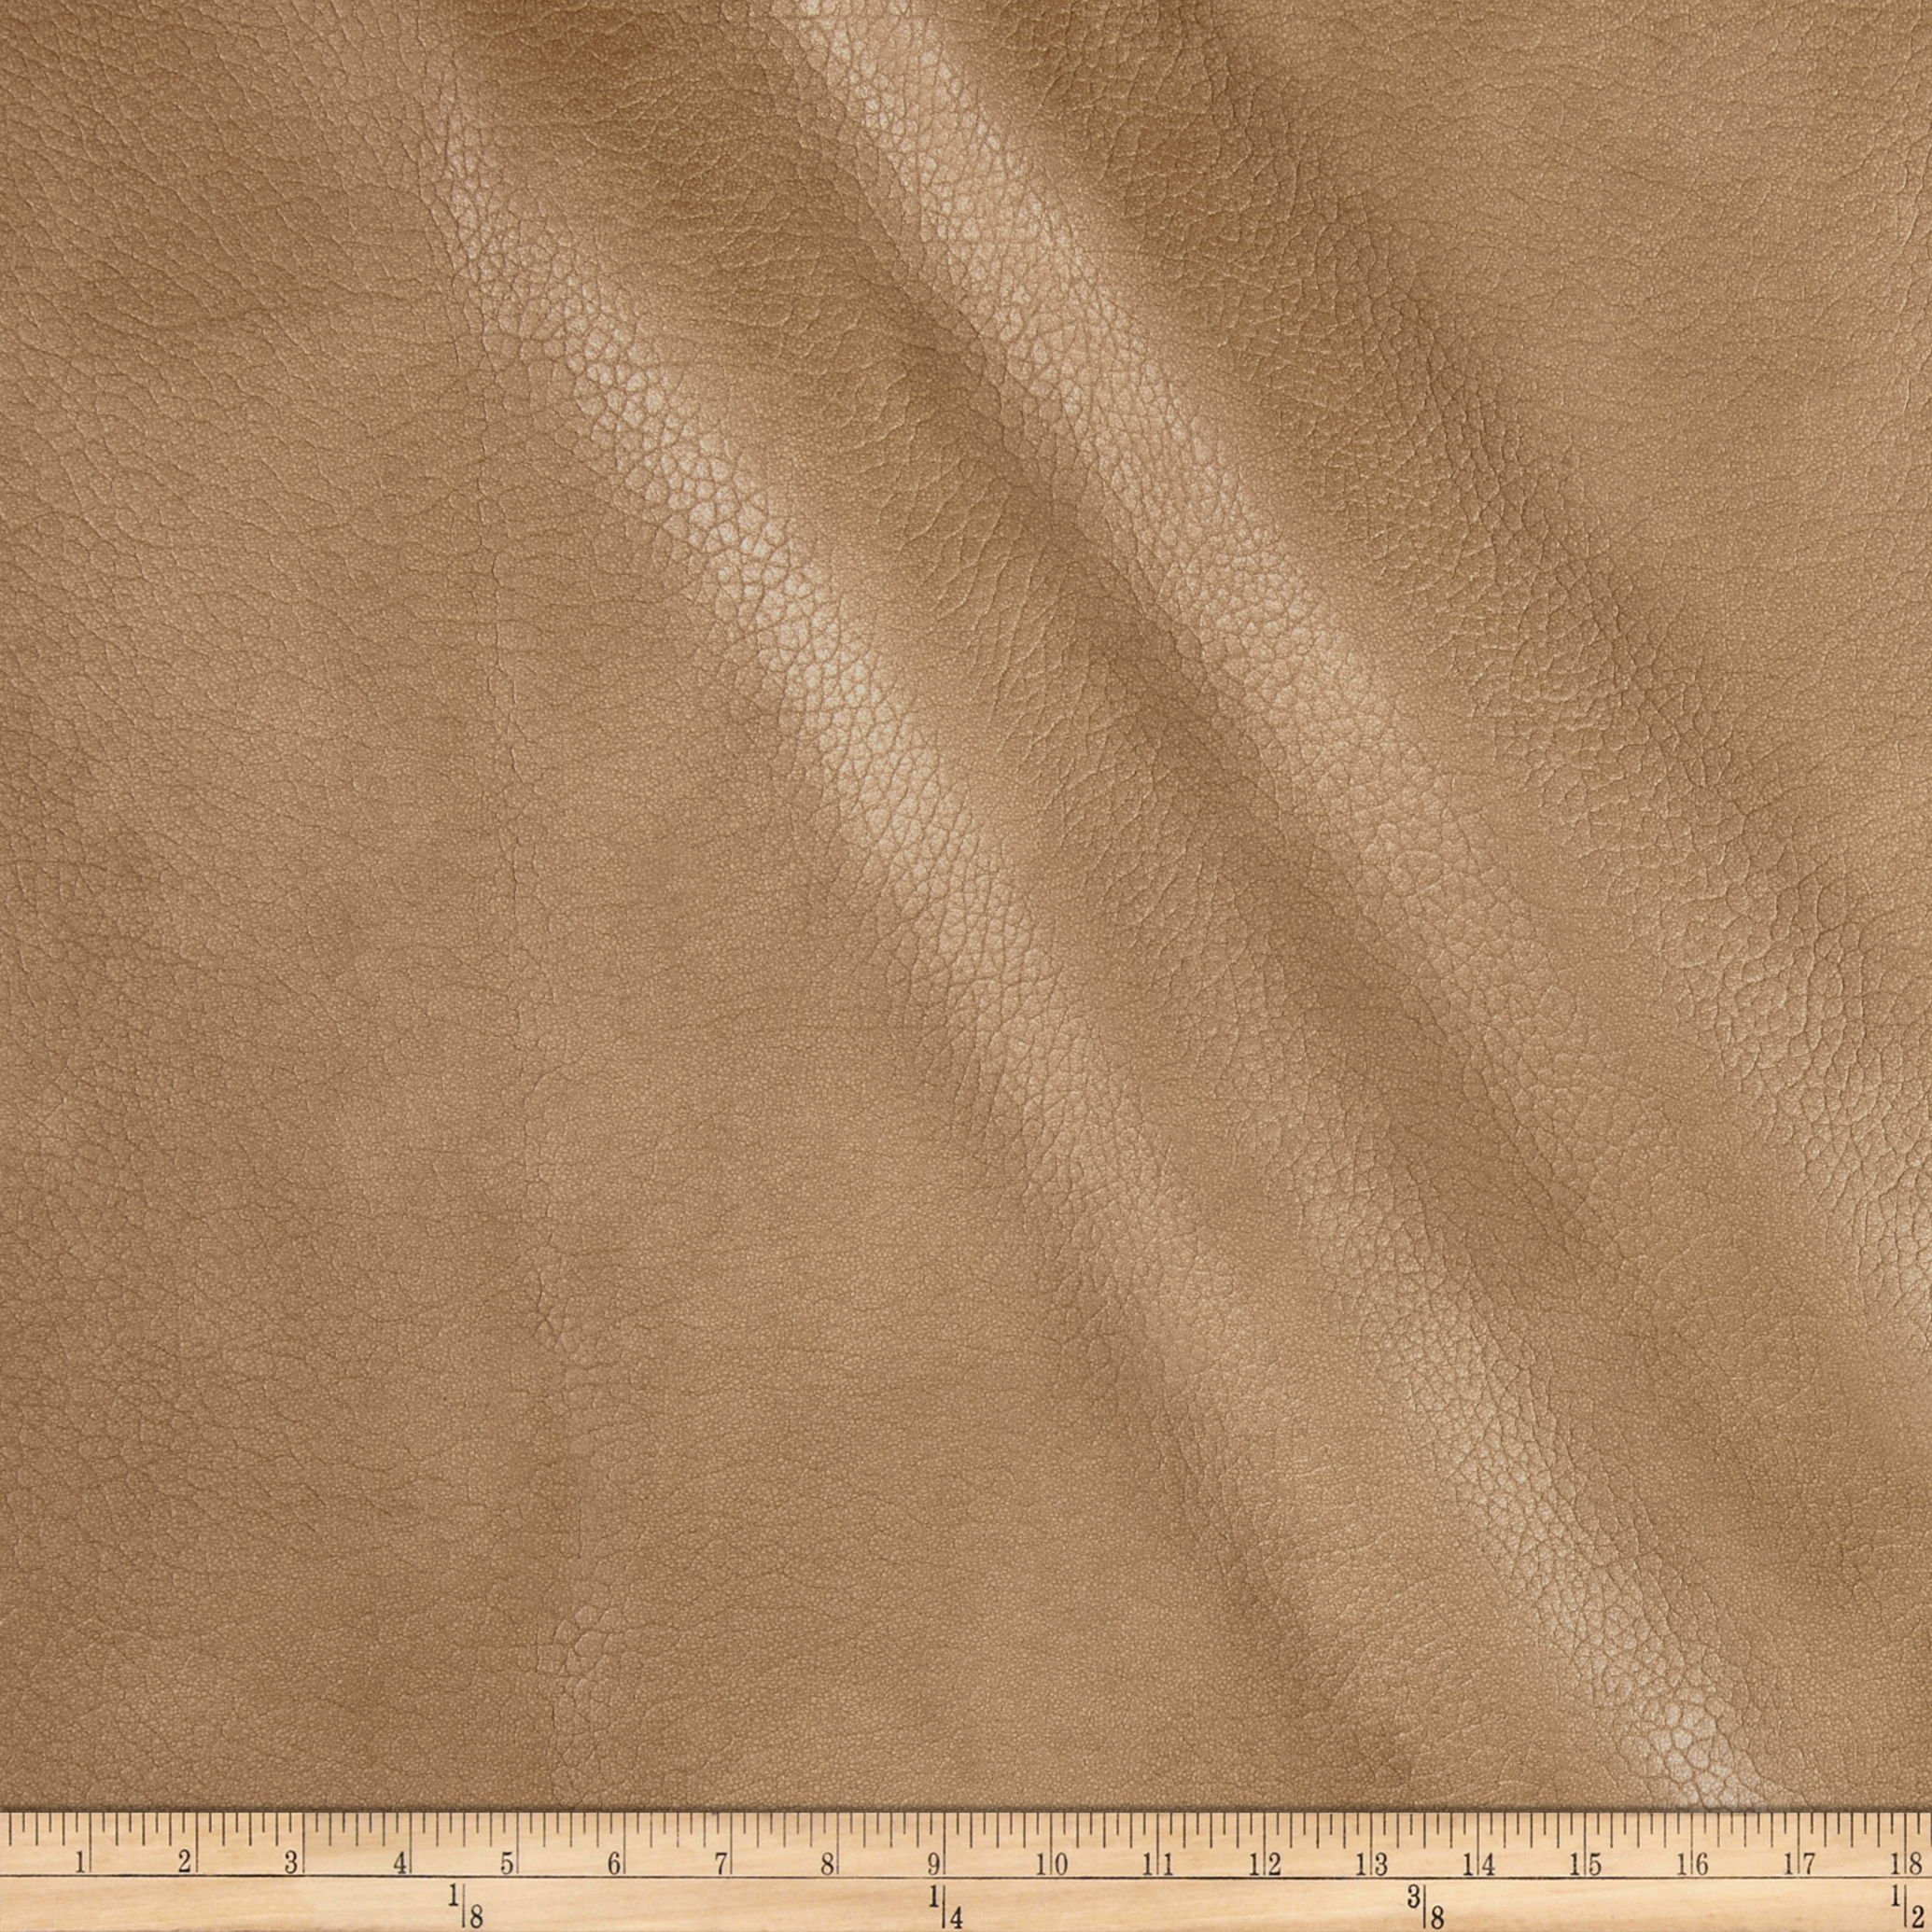 Richloom Tough Faux Leather Lattimer Tobacco Fabric by TNT in USA